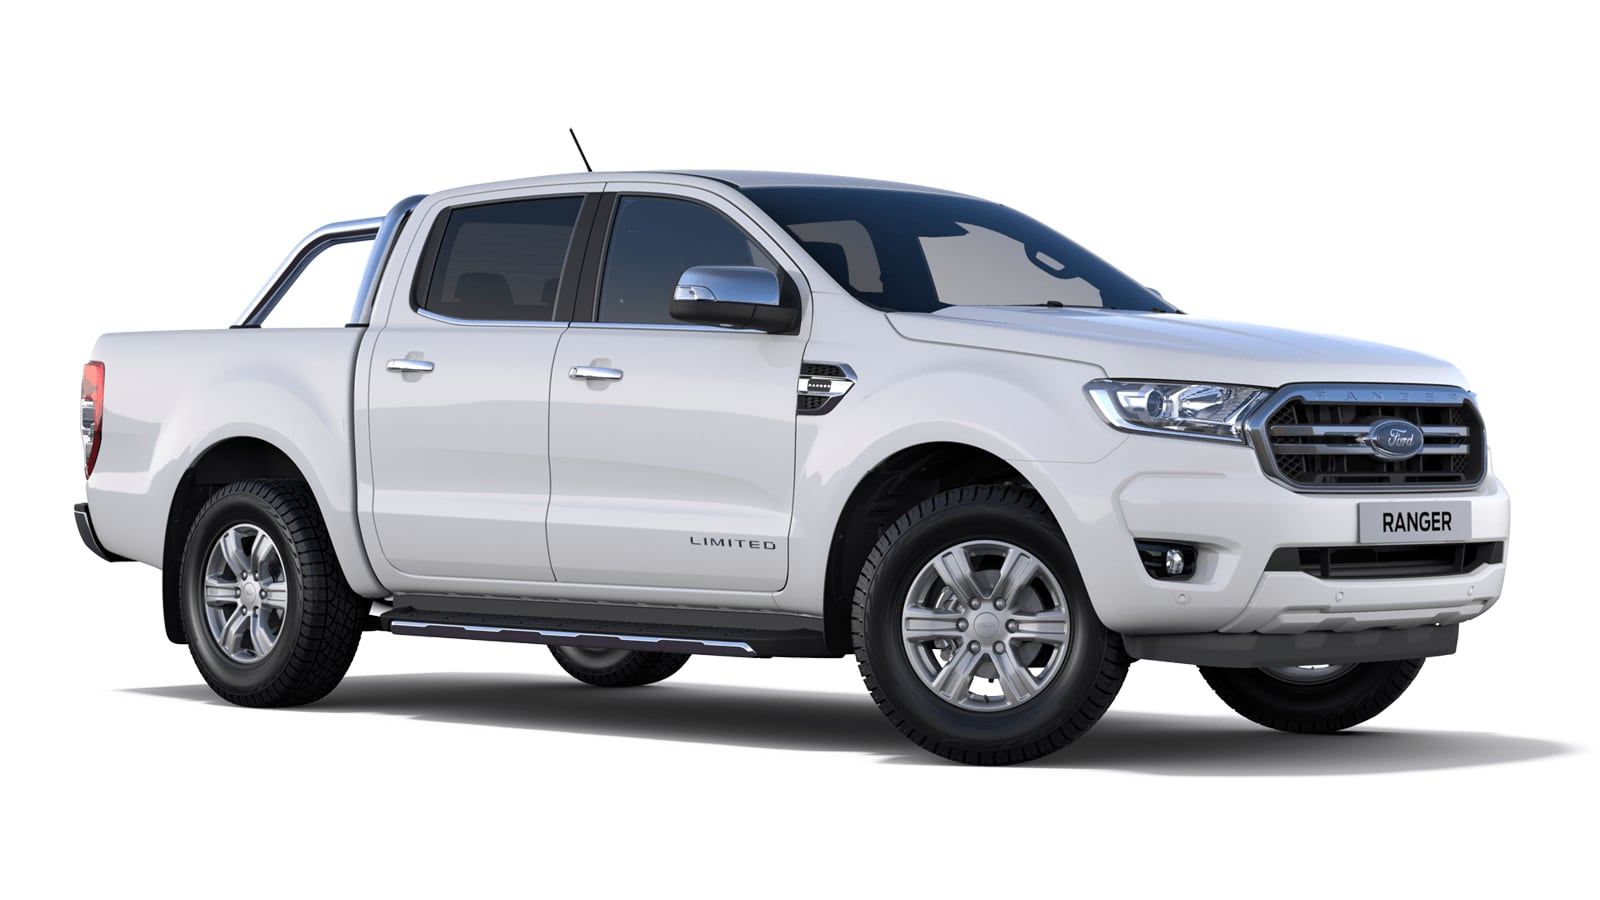 New Ford Ranger at RGR Garages